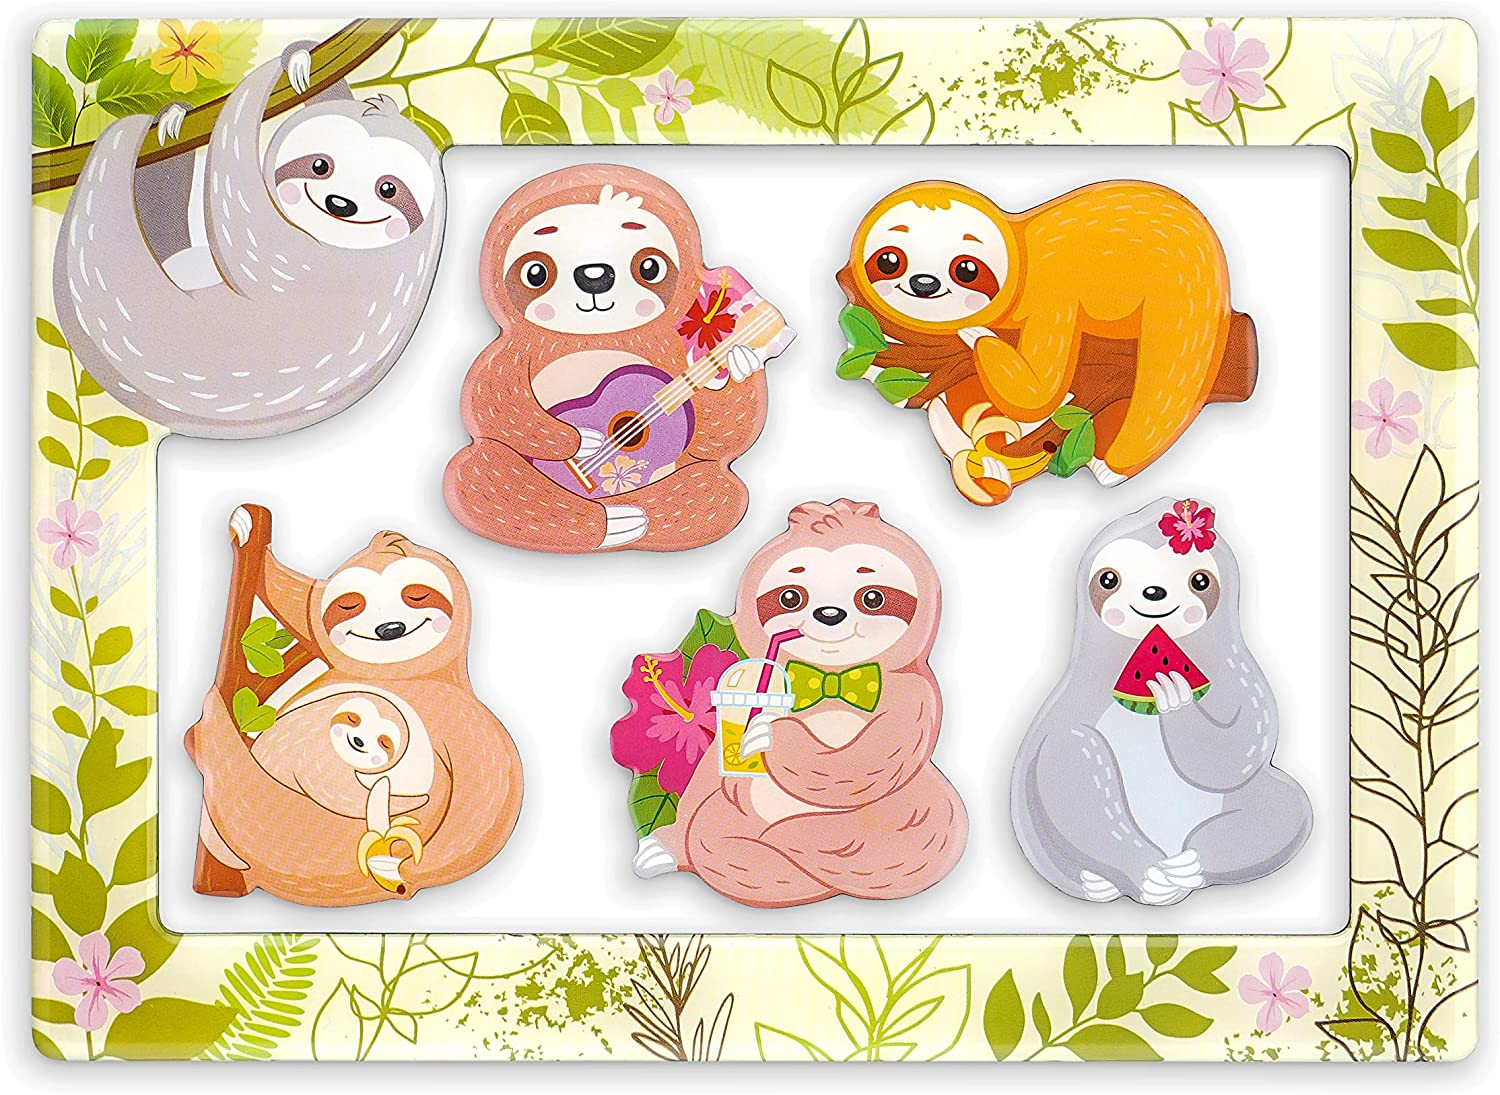 """Morcart 6-in-1 Fridge Magnets and 4""""x 6"""" Magnetic Photo Frame Set 5pcs Sloth Refrigerator Magnets, Best Gift Choice (Sloth Magnets)"""